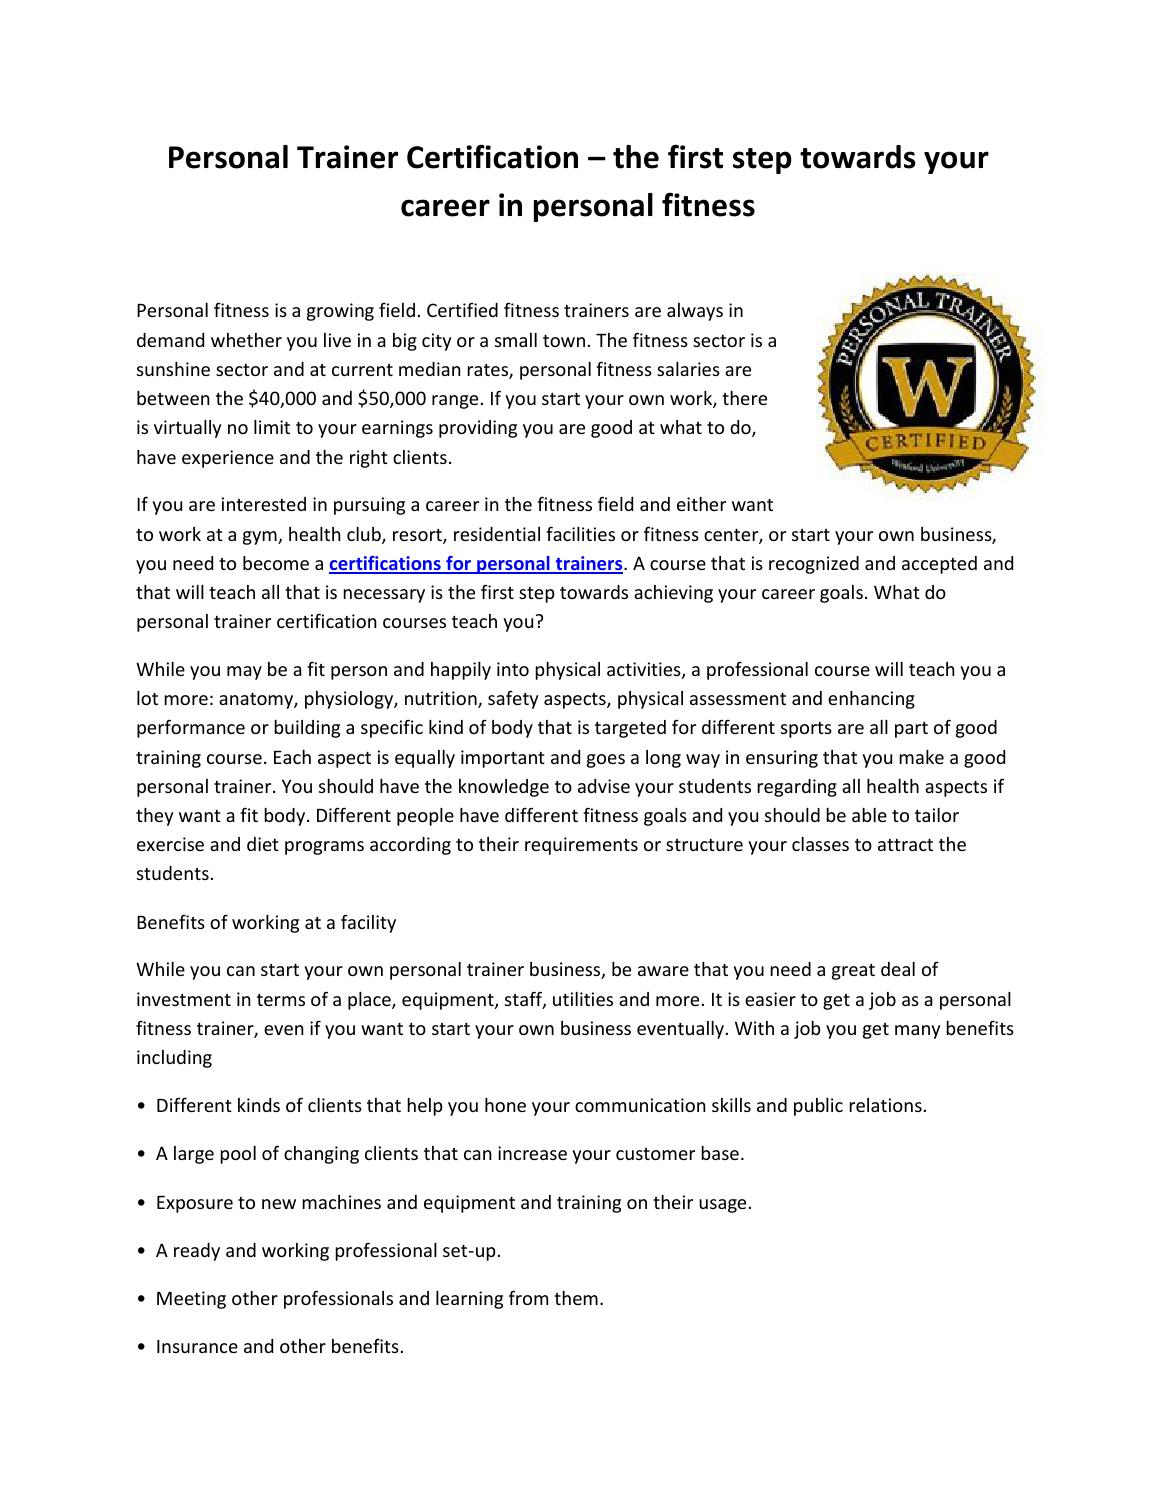 Personal Trainer Certification Comparison By Seoissu Issuu